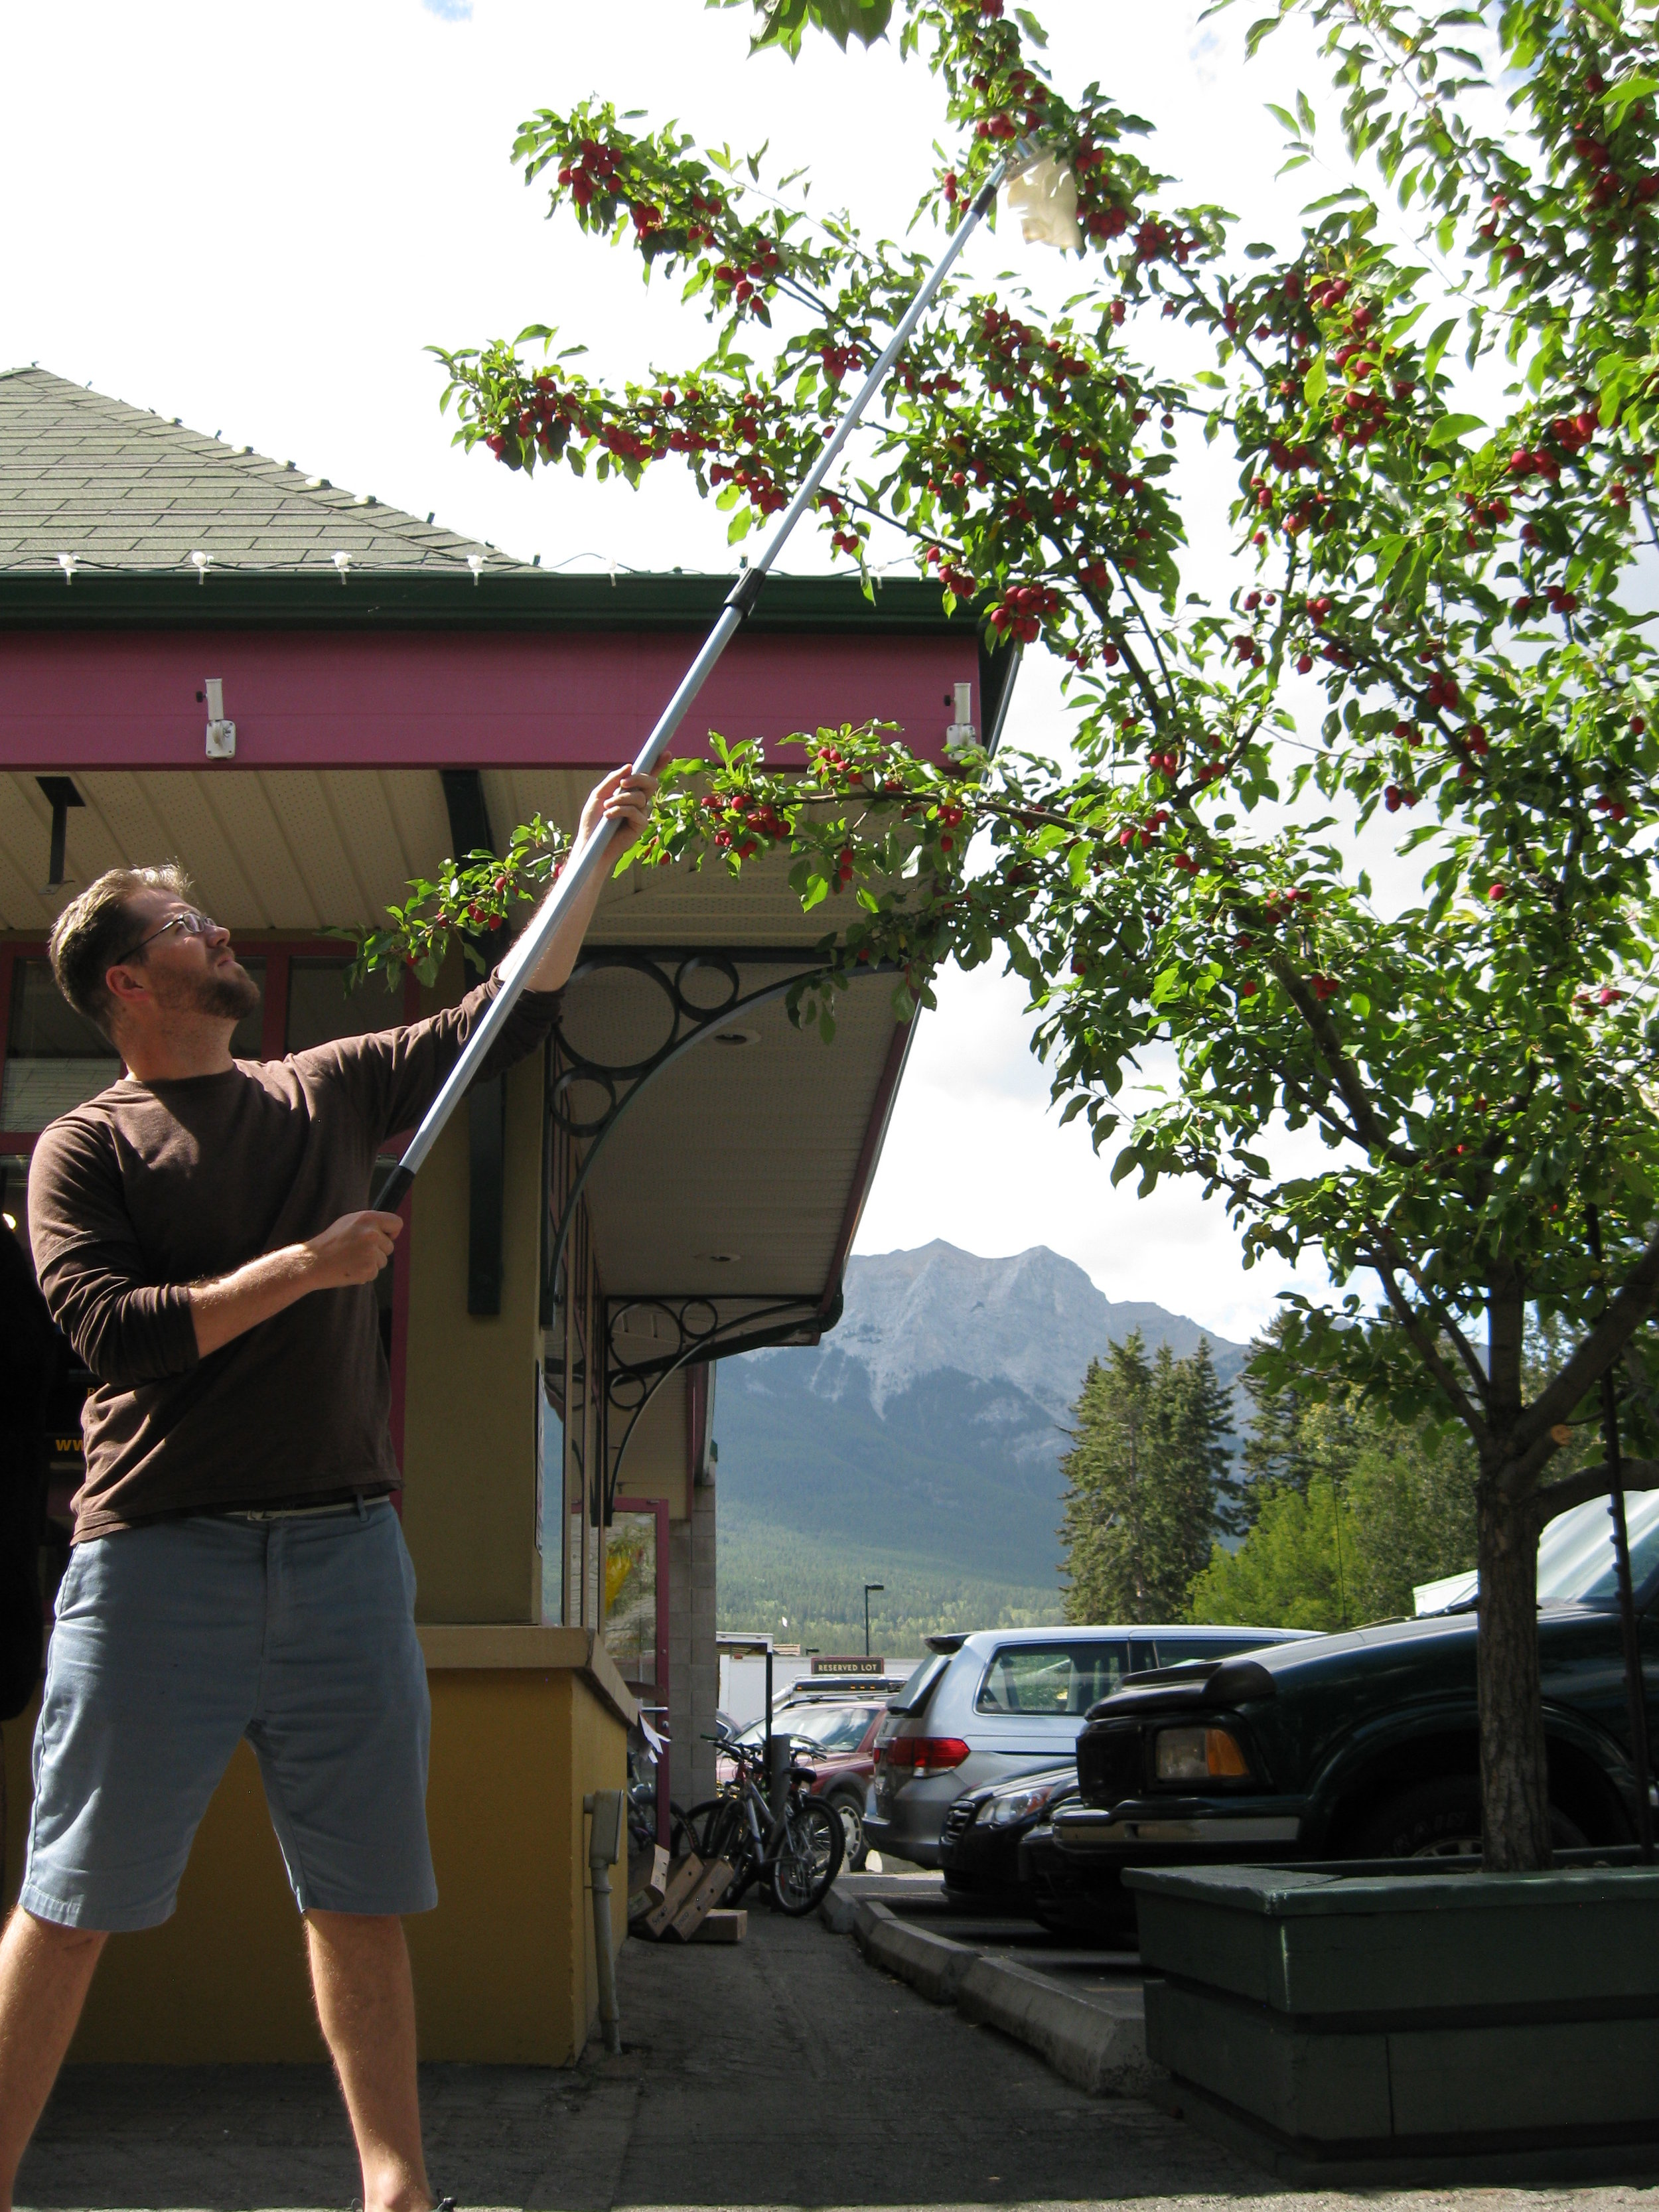 Tyler demonstrates how to use our extendable fruit-picking equipment.